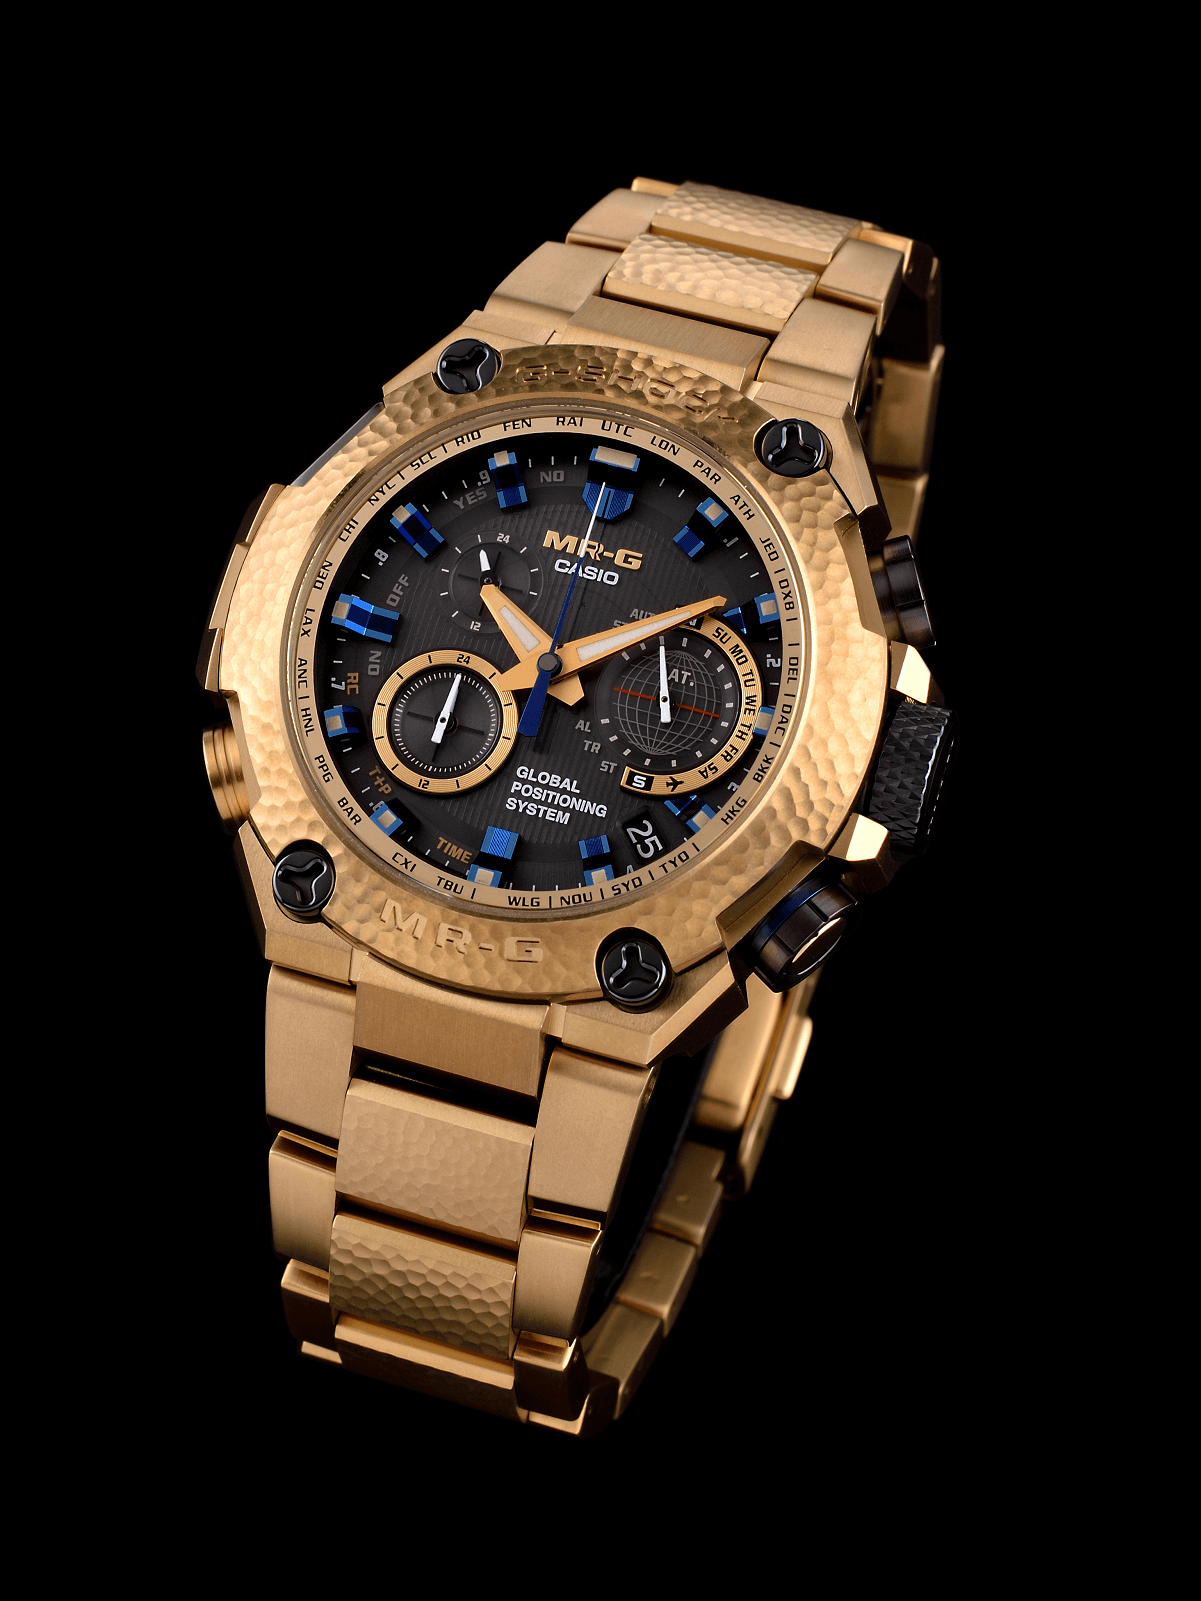 Casio G Shock Mrg G1000hg 9a Gold Hammer Tone 20th Anniversary Gd 400mb 1dr Limited Edition